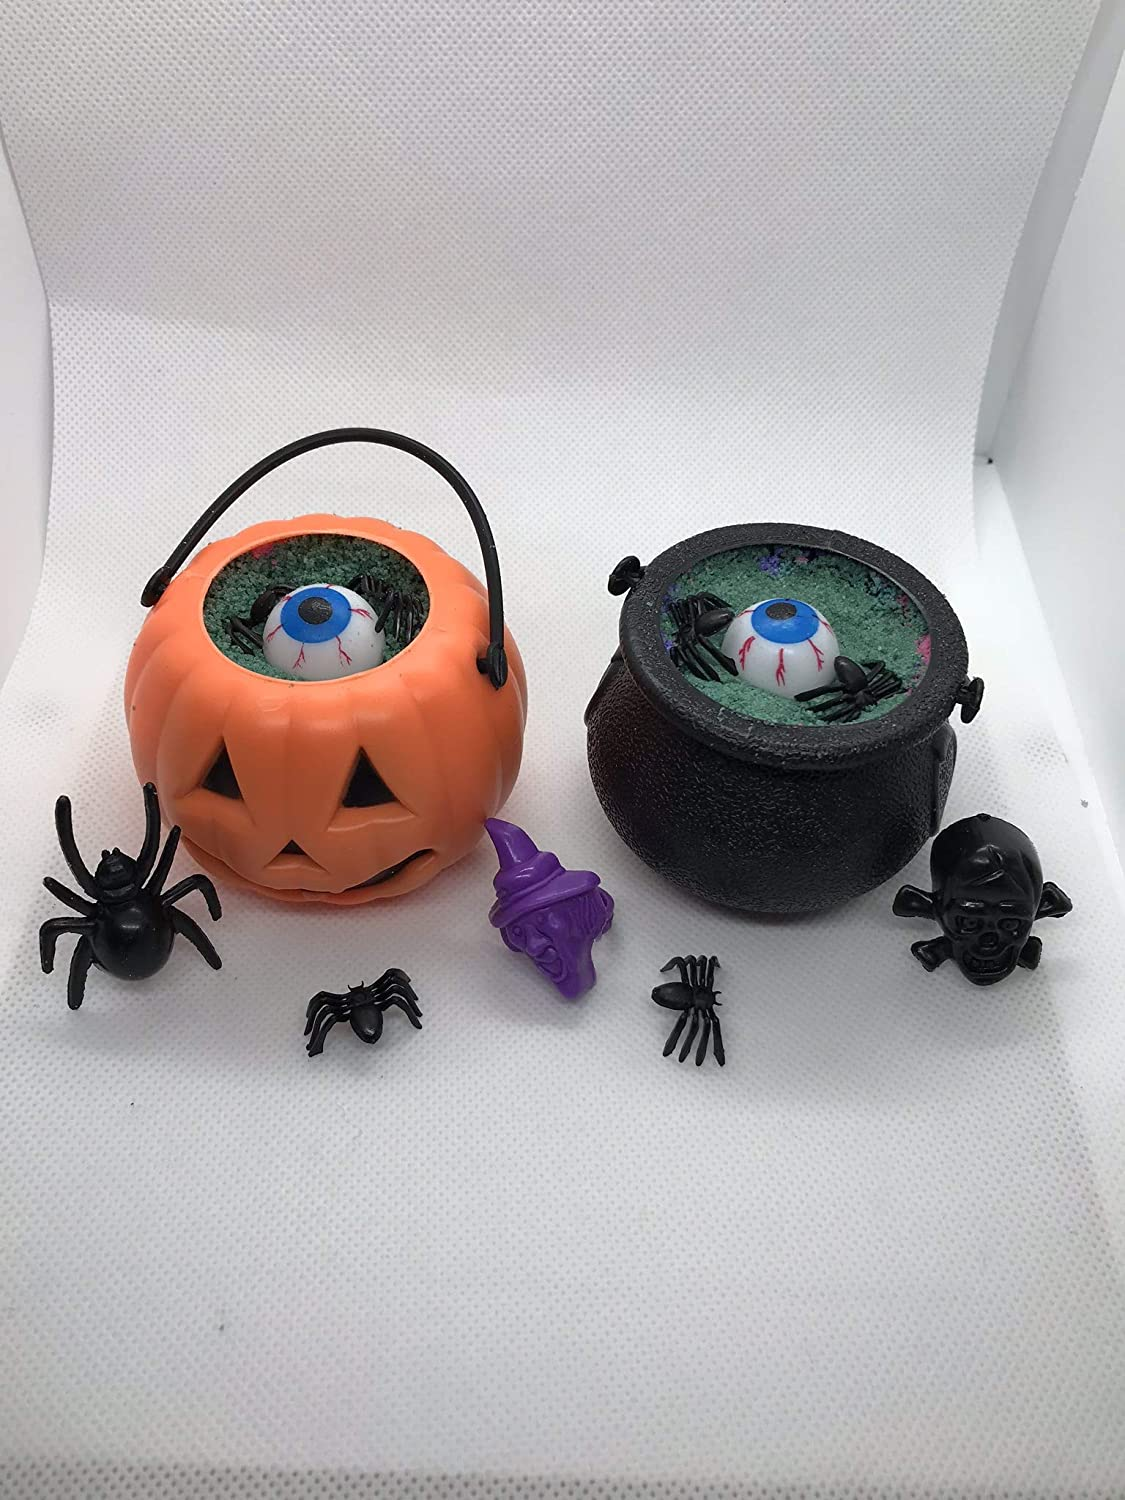 The Cauldron Deluxe Bath Bombs